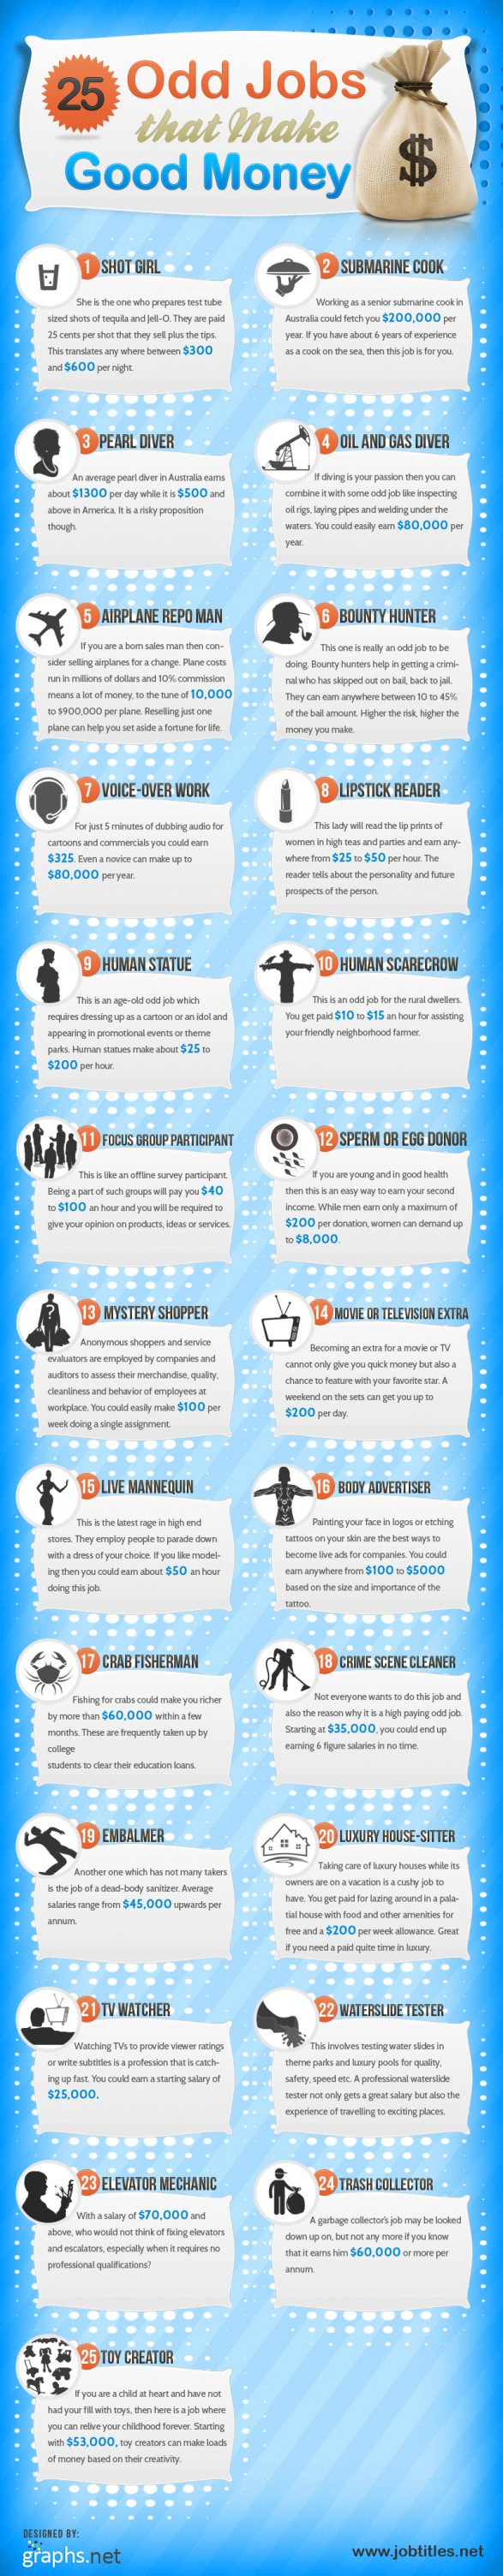 25-odd-jobs-that-make-good-money_50d5a7be86a3f_w587